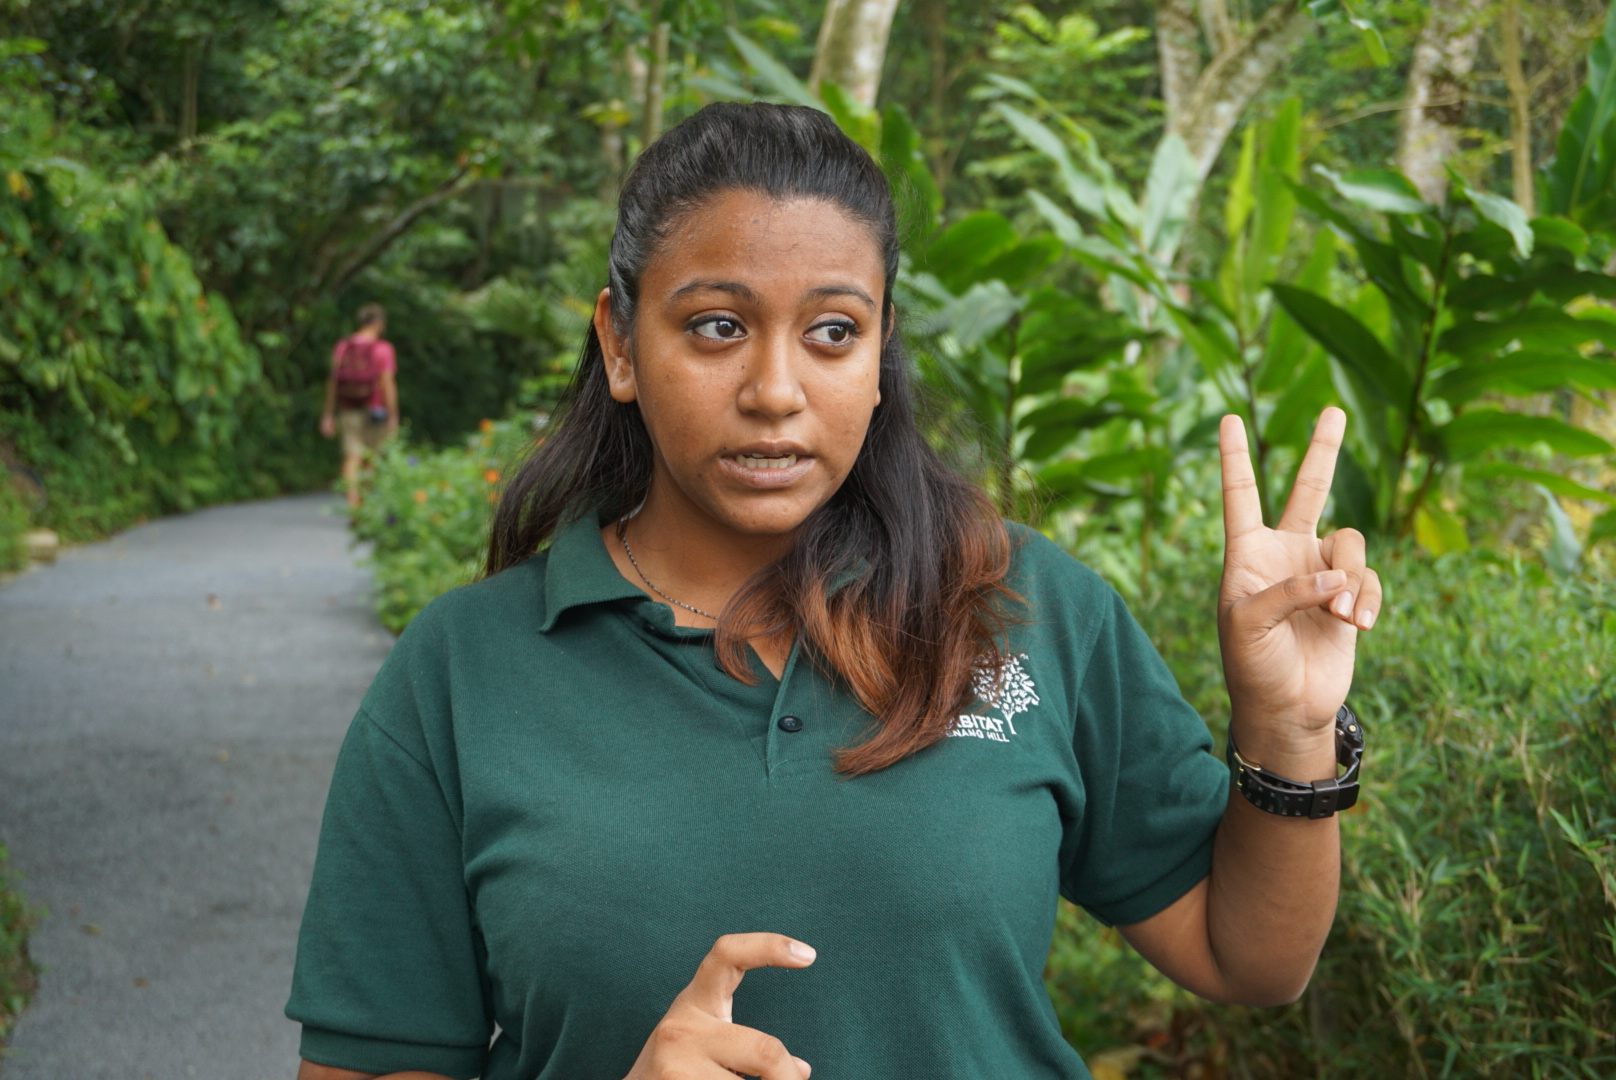 Shakira - one of the knowledgeable rangers at The Habitat